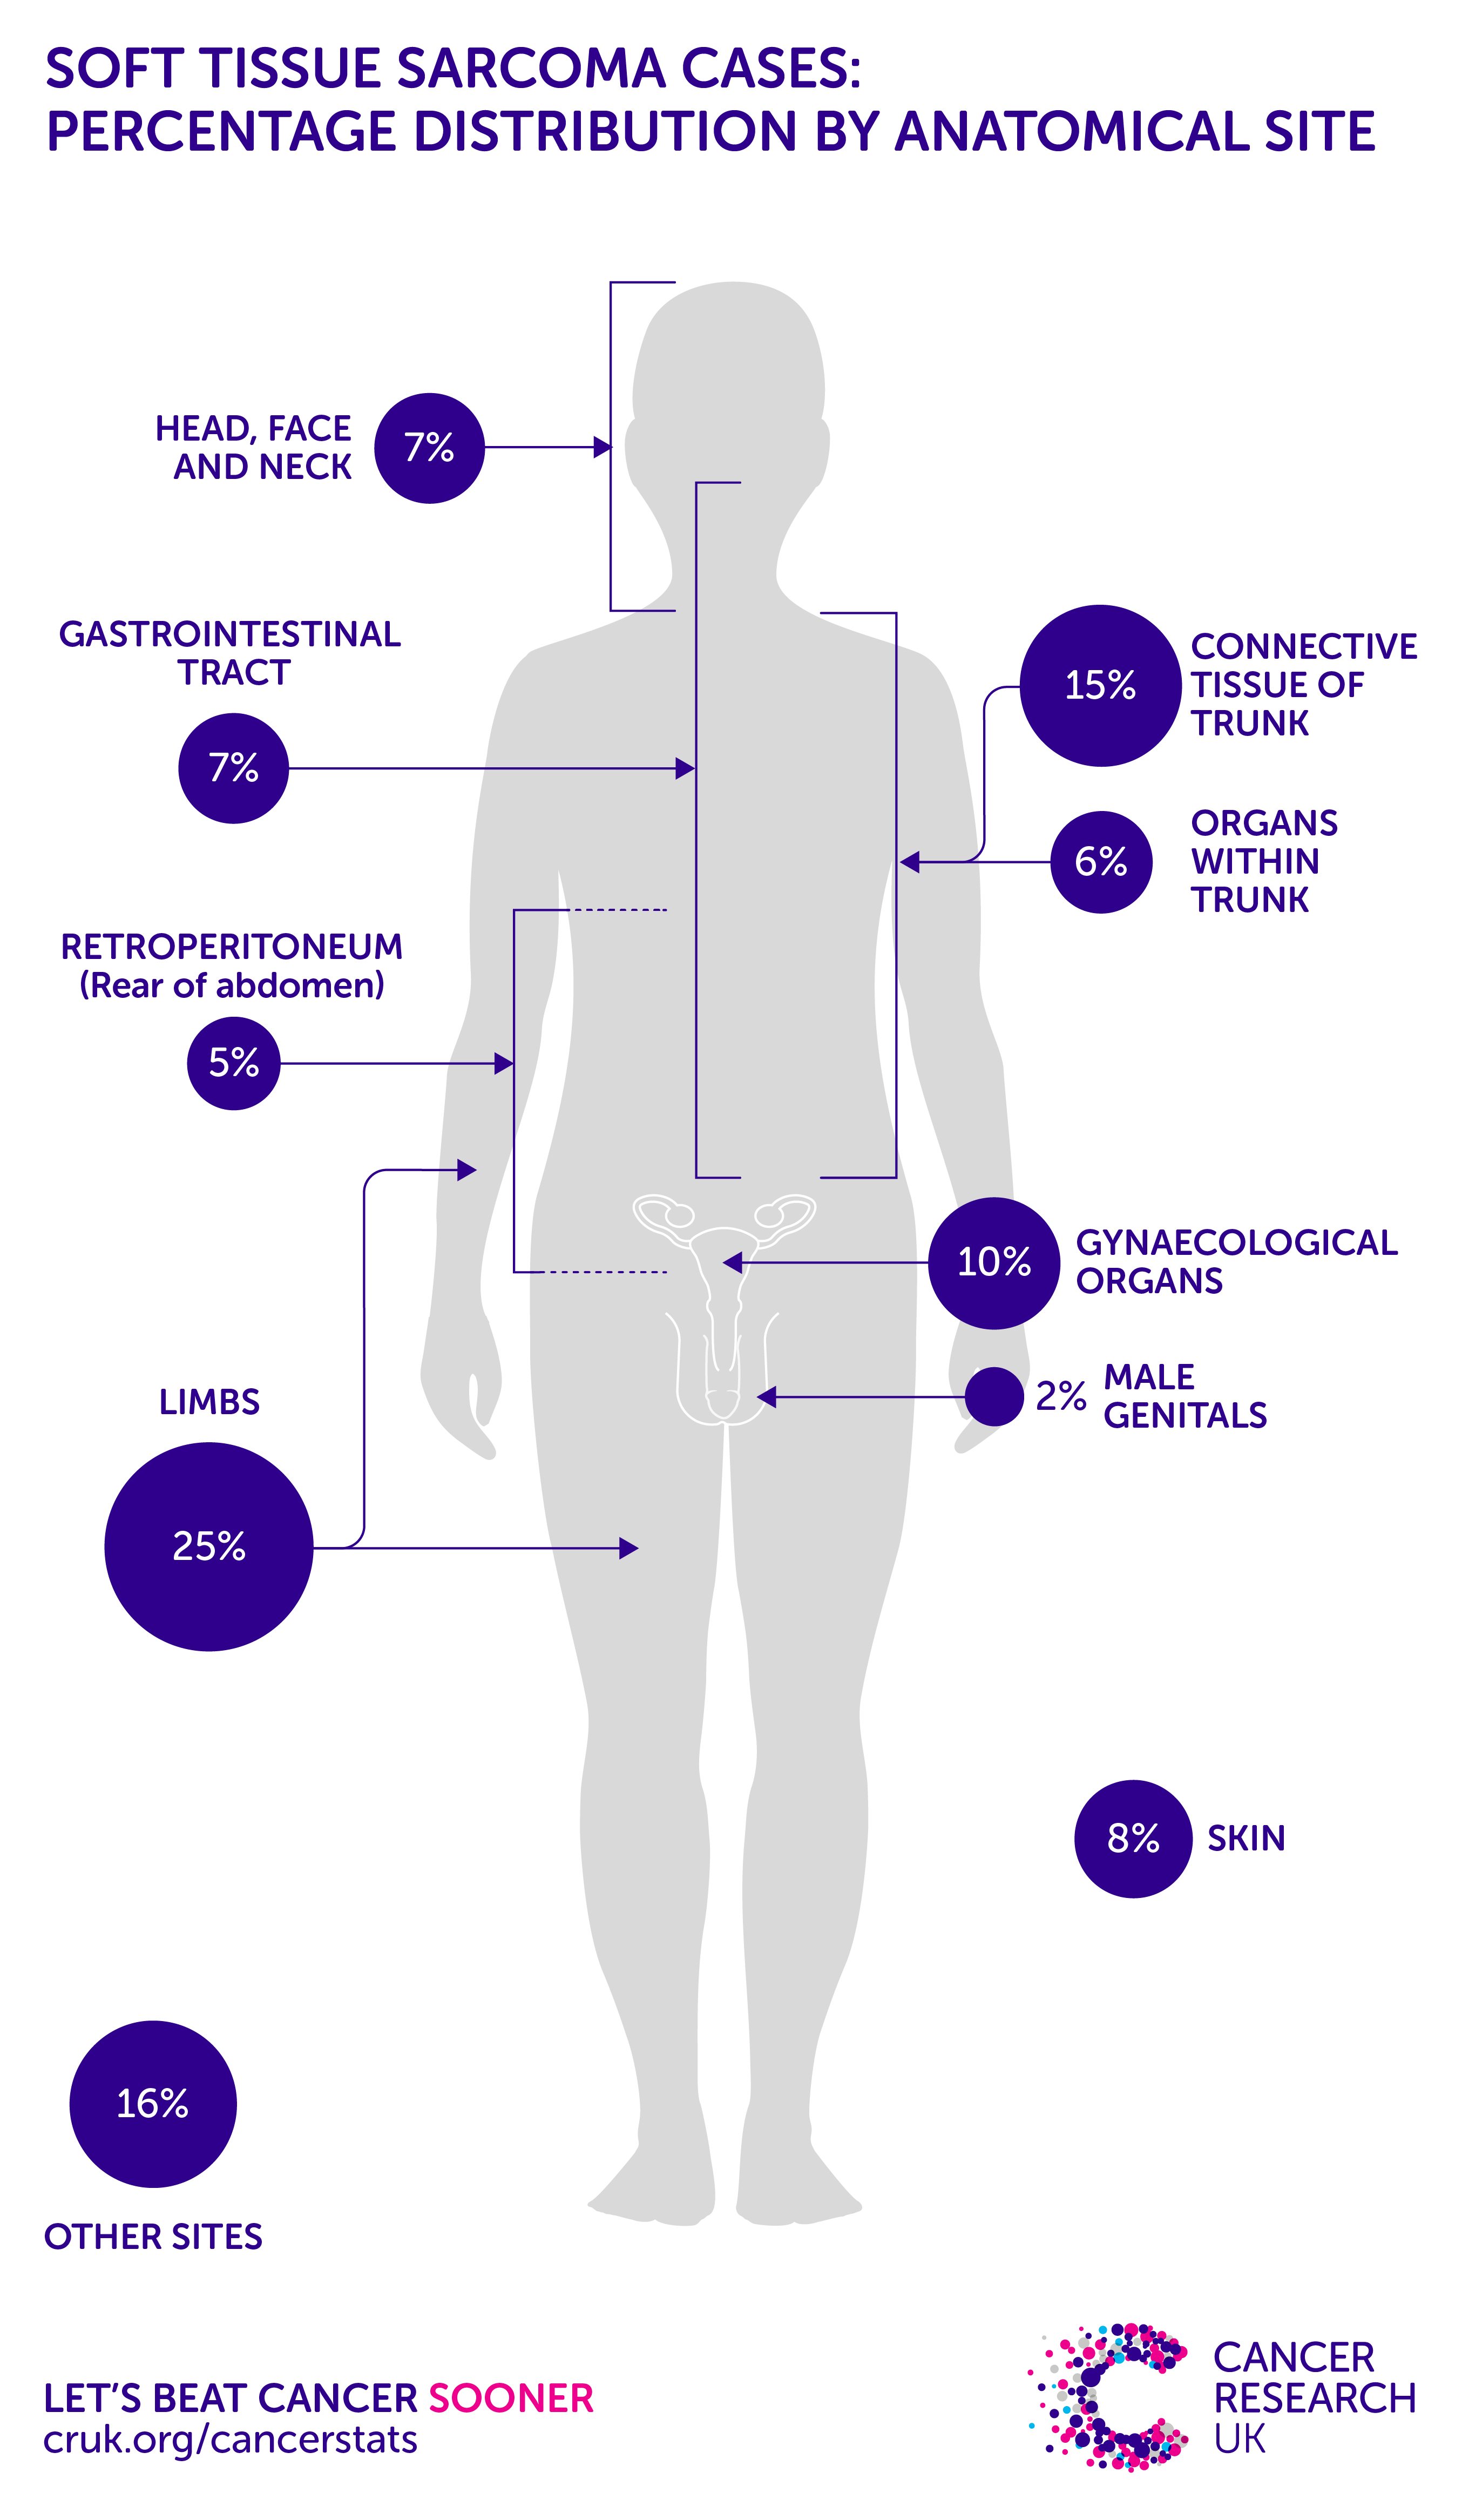 Soft tissue sarcoma incidence statistics | Cancer Research UK